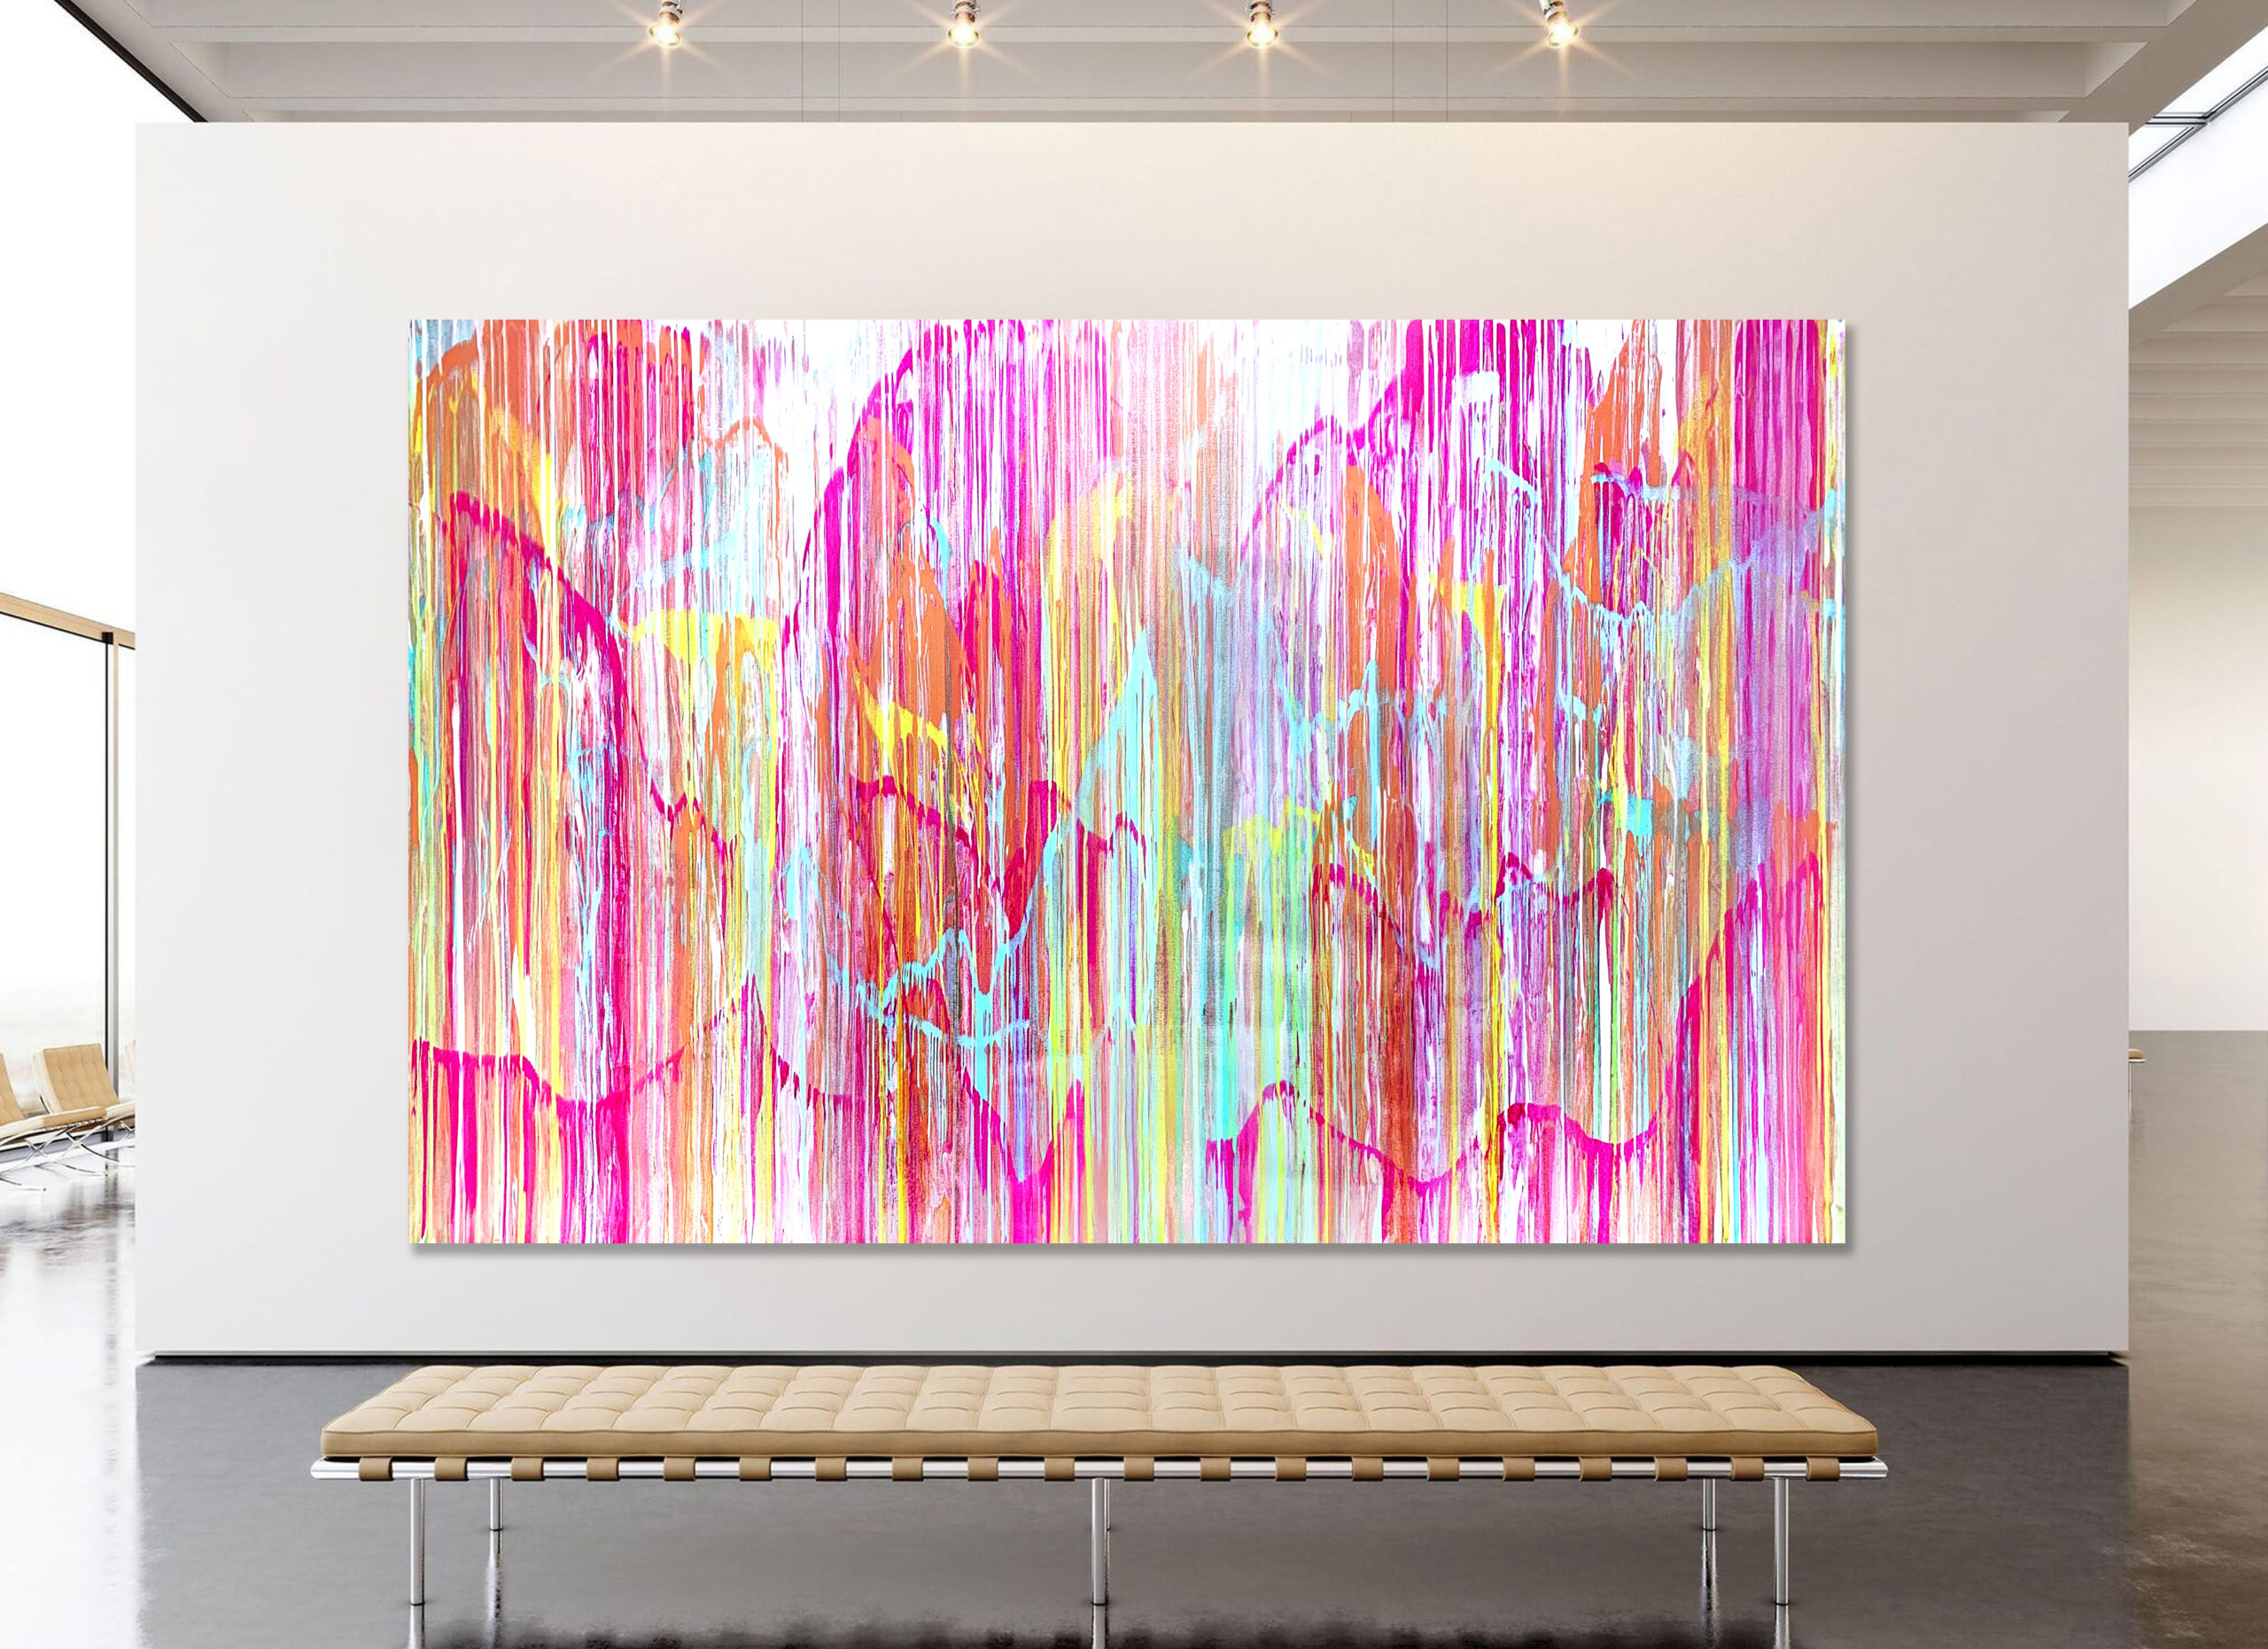 Pastel Landscape - abstract expressionsim by Estelle Asmodelle